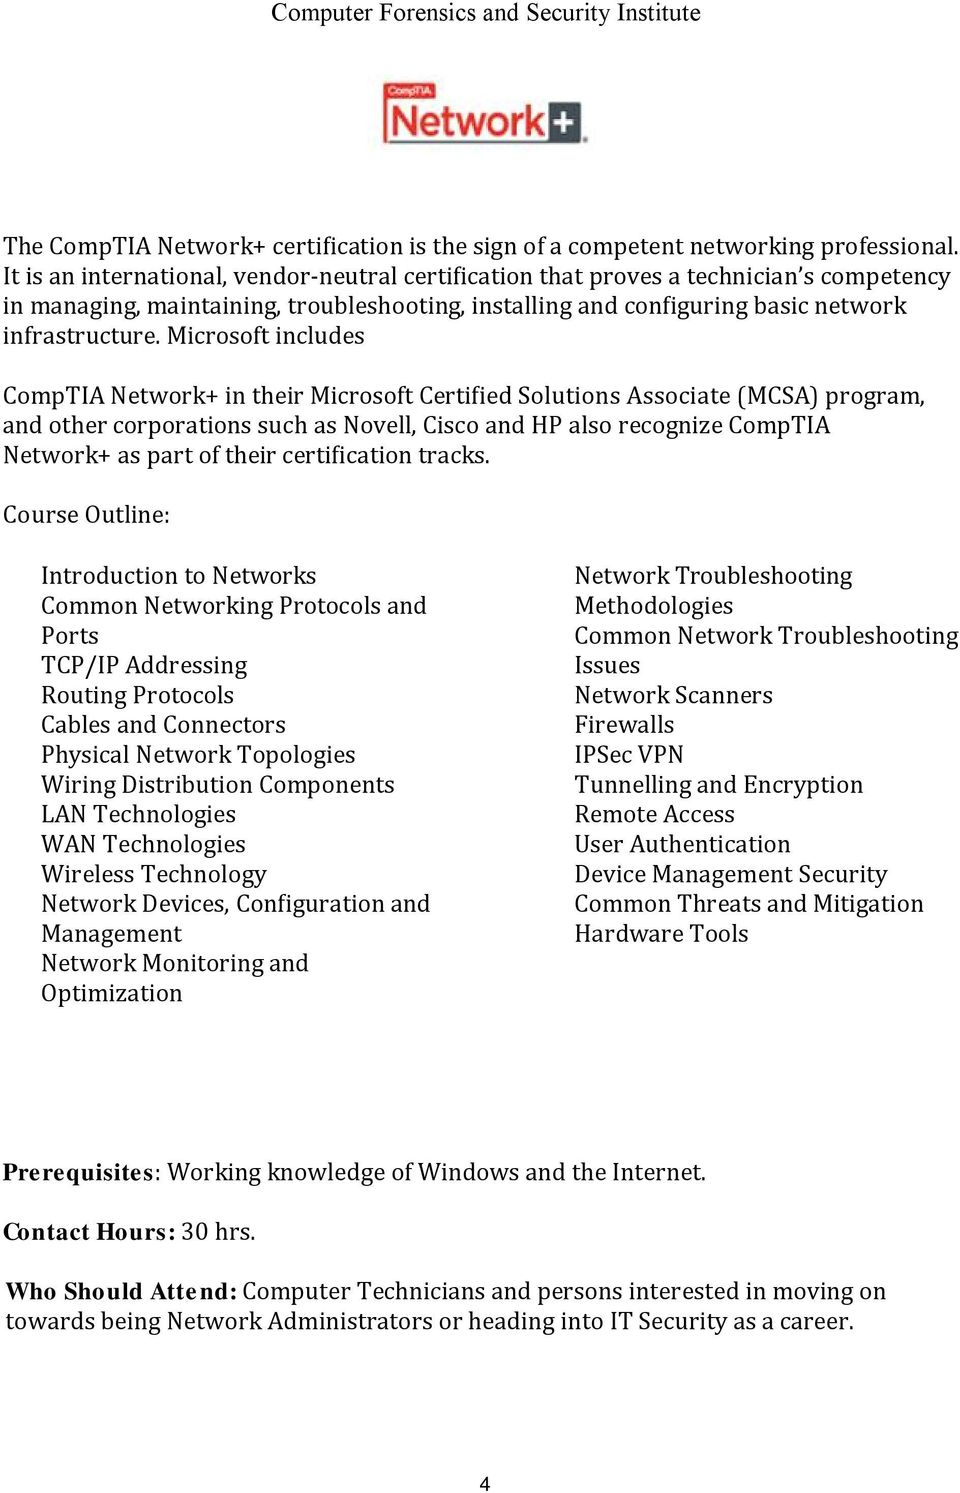 Microsoft includes CompTIA Network+ in their Microsoft Certified Solutions Associate (MCSA) program, and other corporations such as Novell, Cisco and HP also recognize CompTIA Network+ as part of